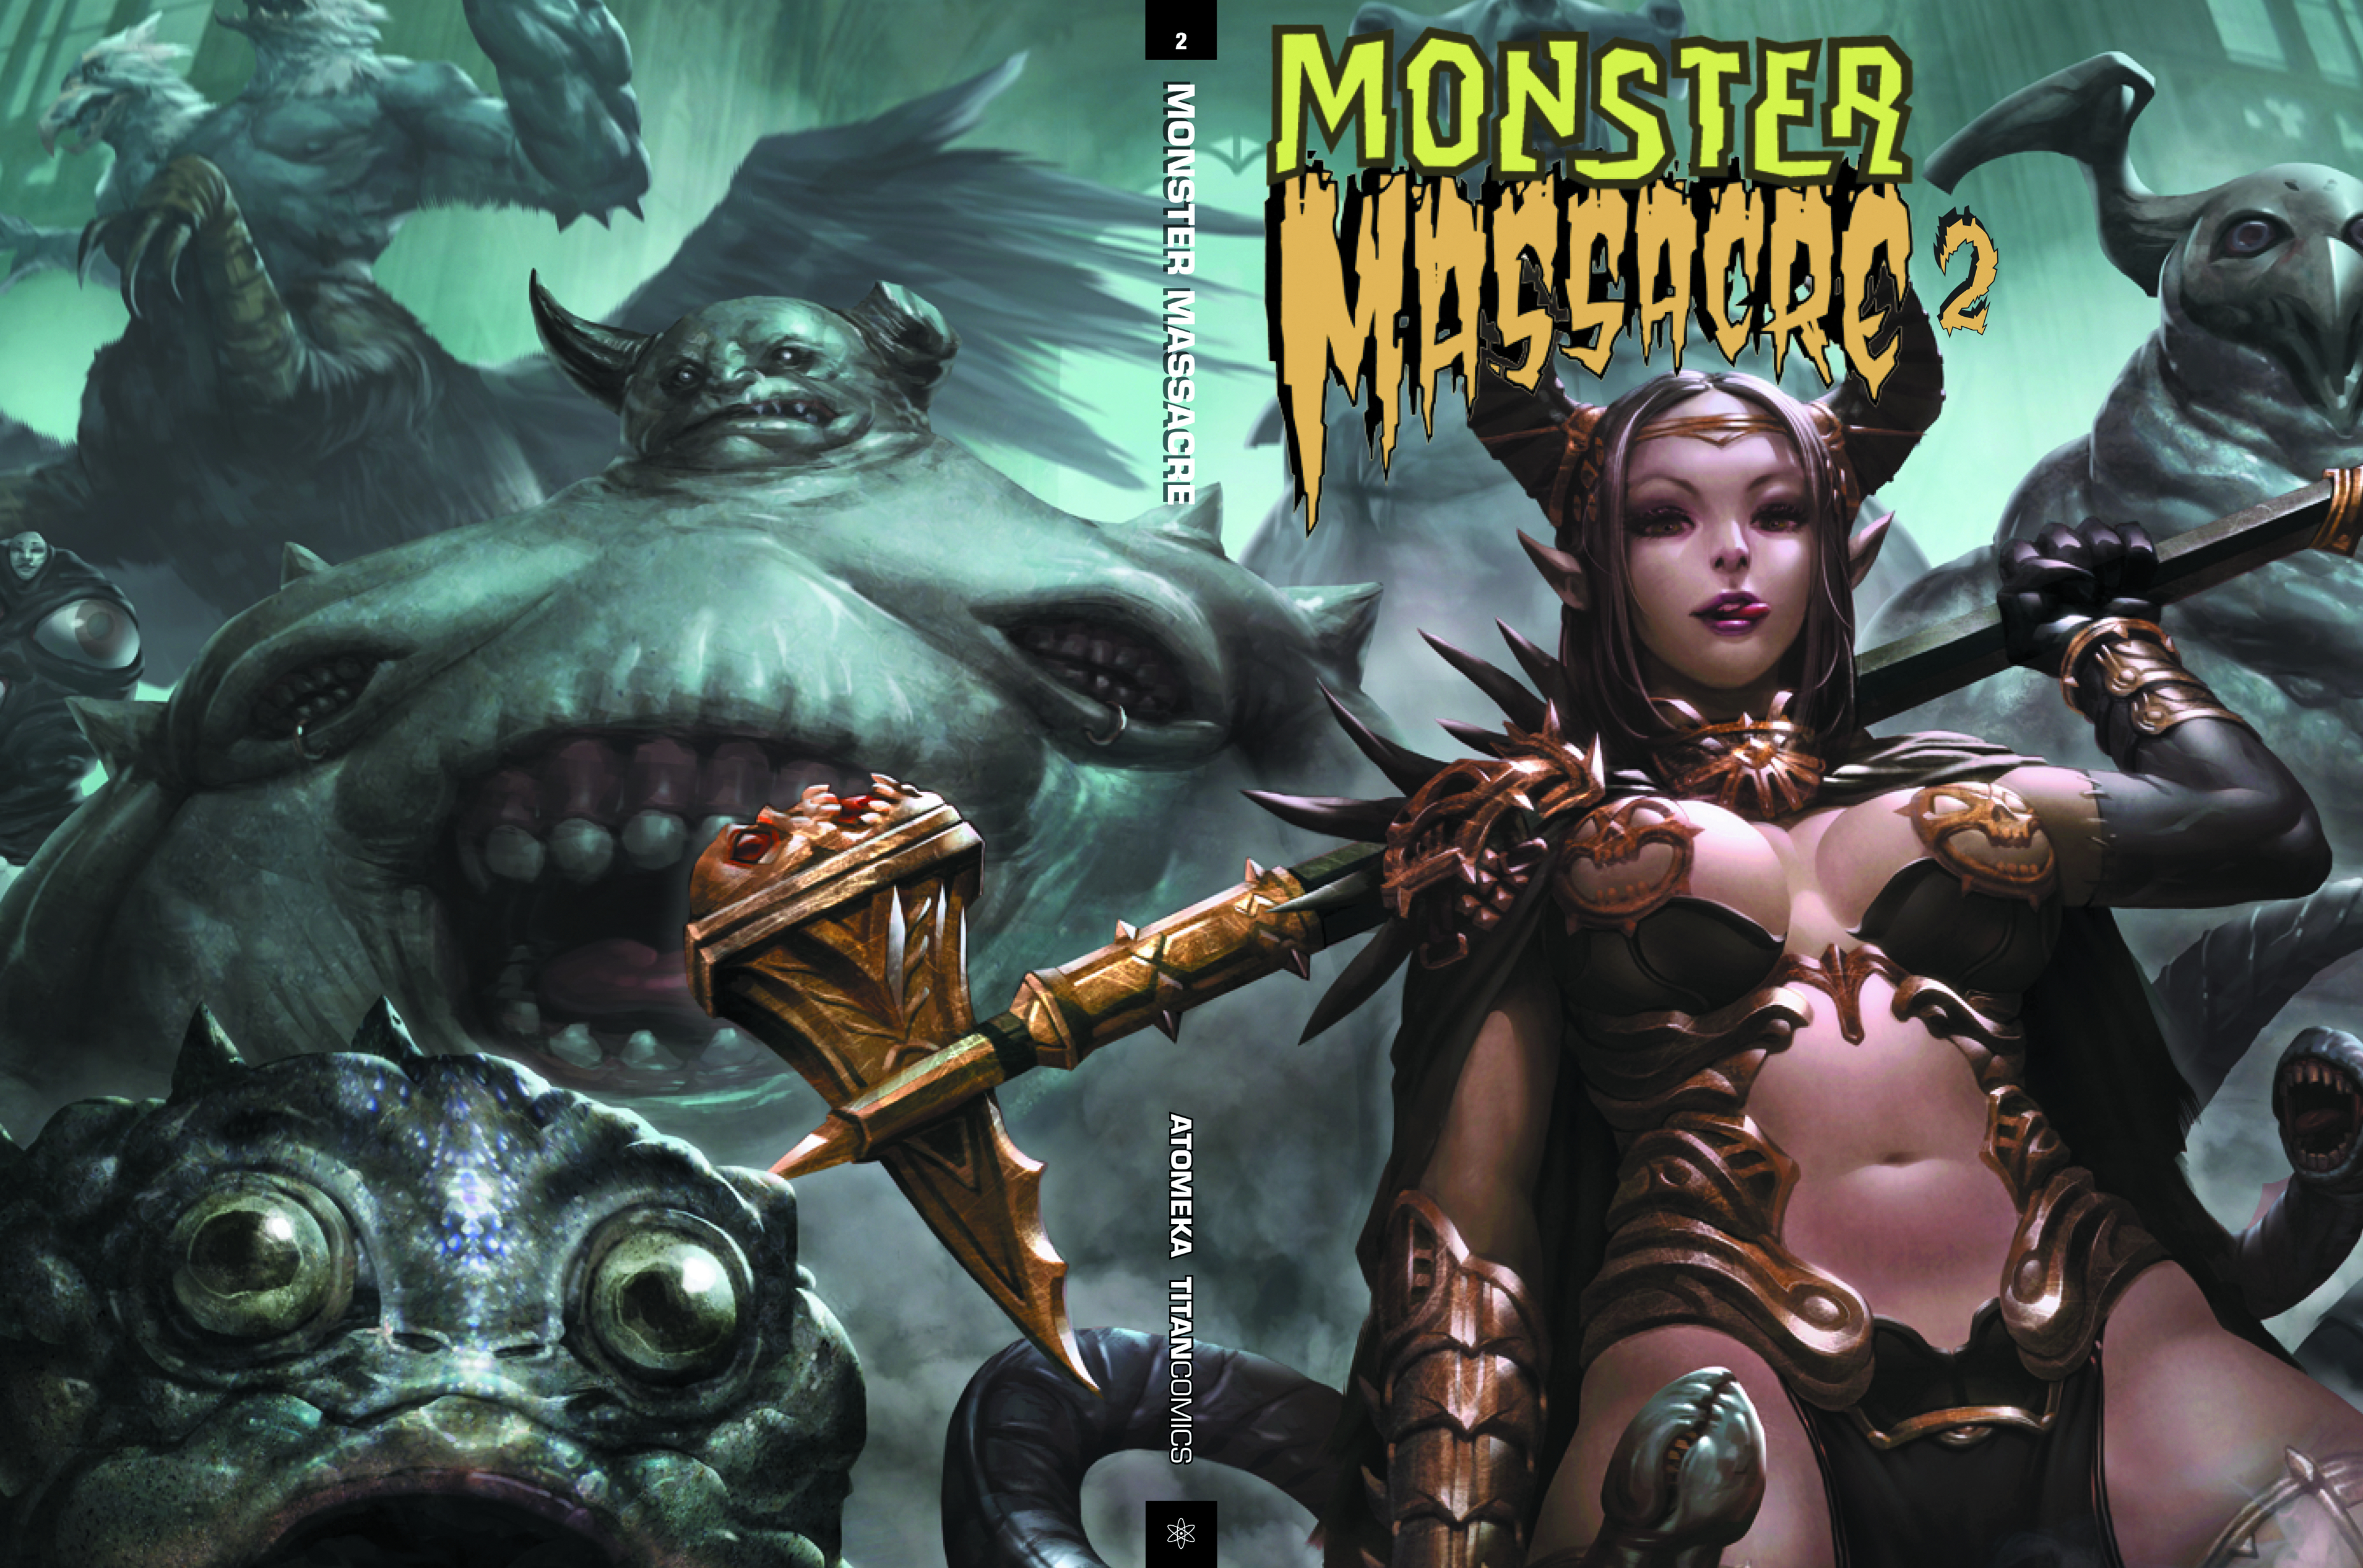 MONSTER MASSACRE HC VOL 02